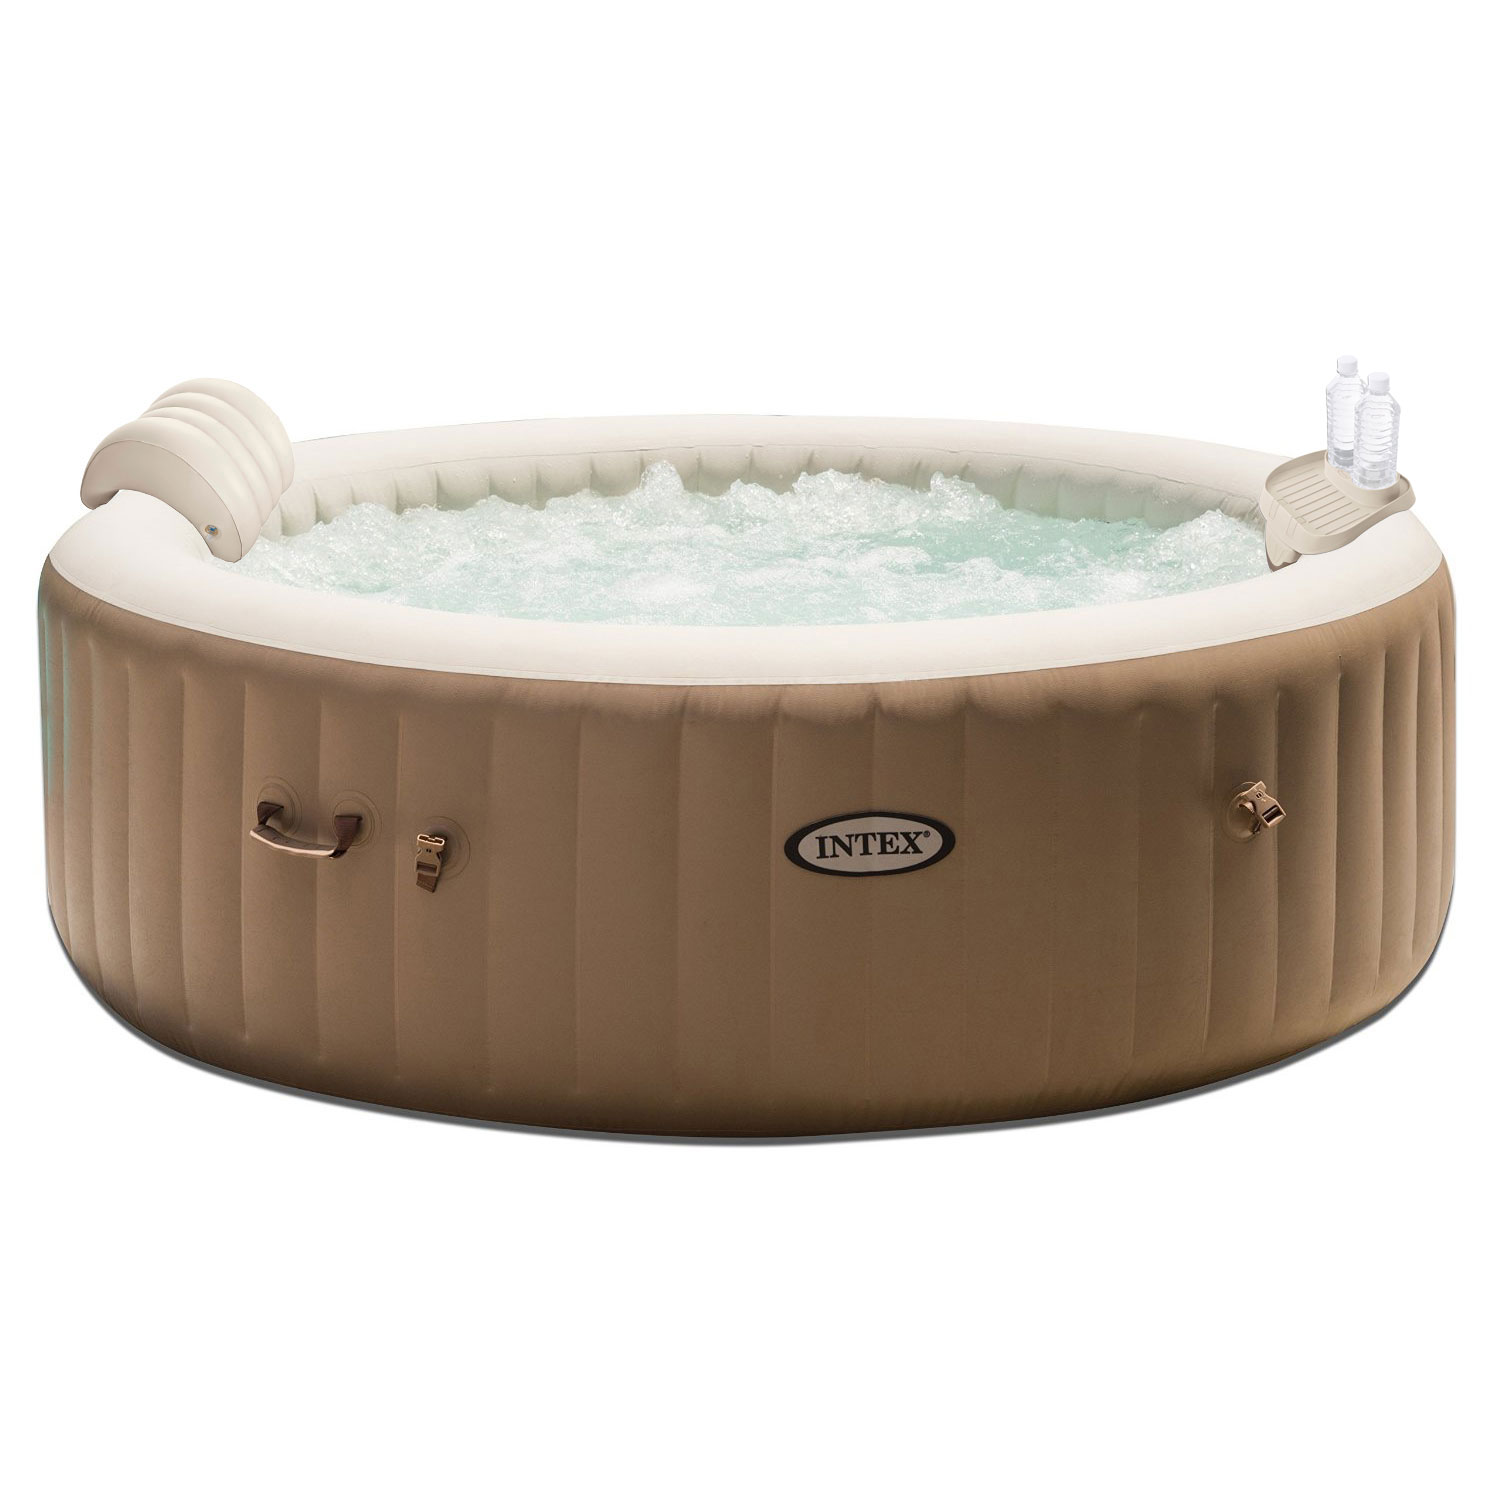 Intex PureSpa 4 Person Inflatable Jet Spa Hot Tub with Drink Tray & Headrest by Intex